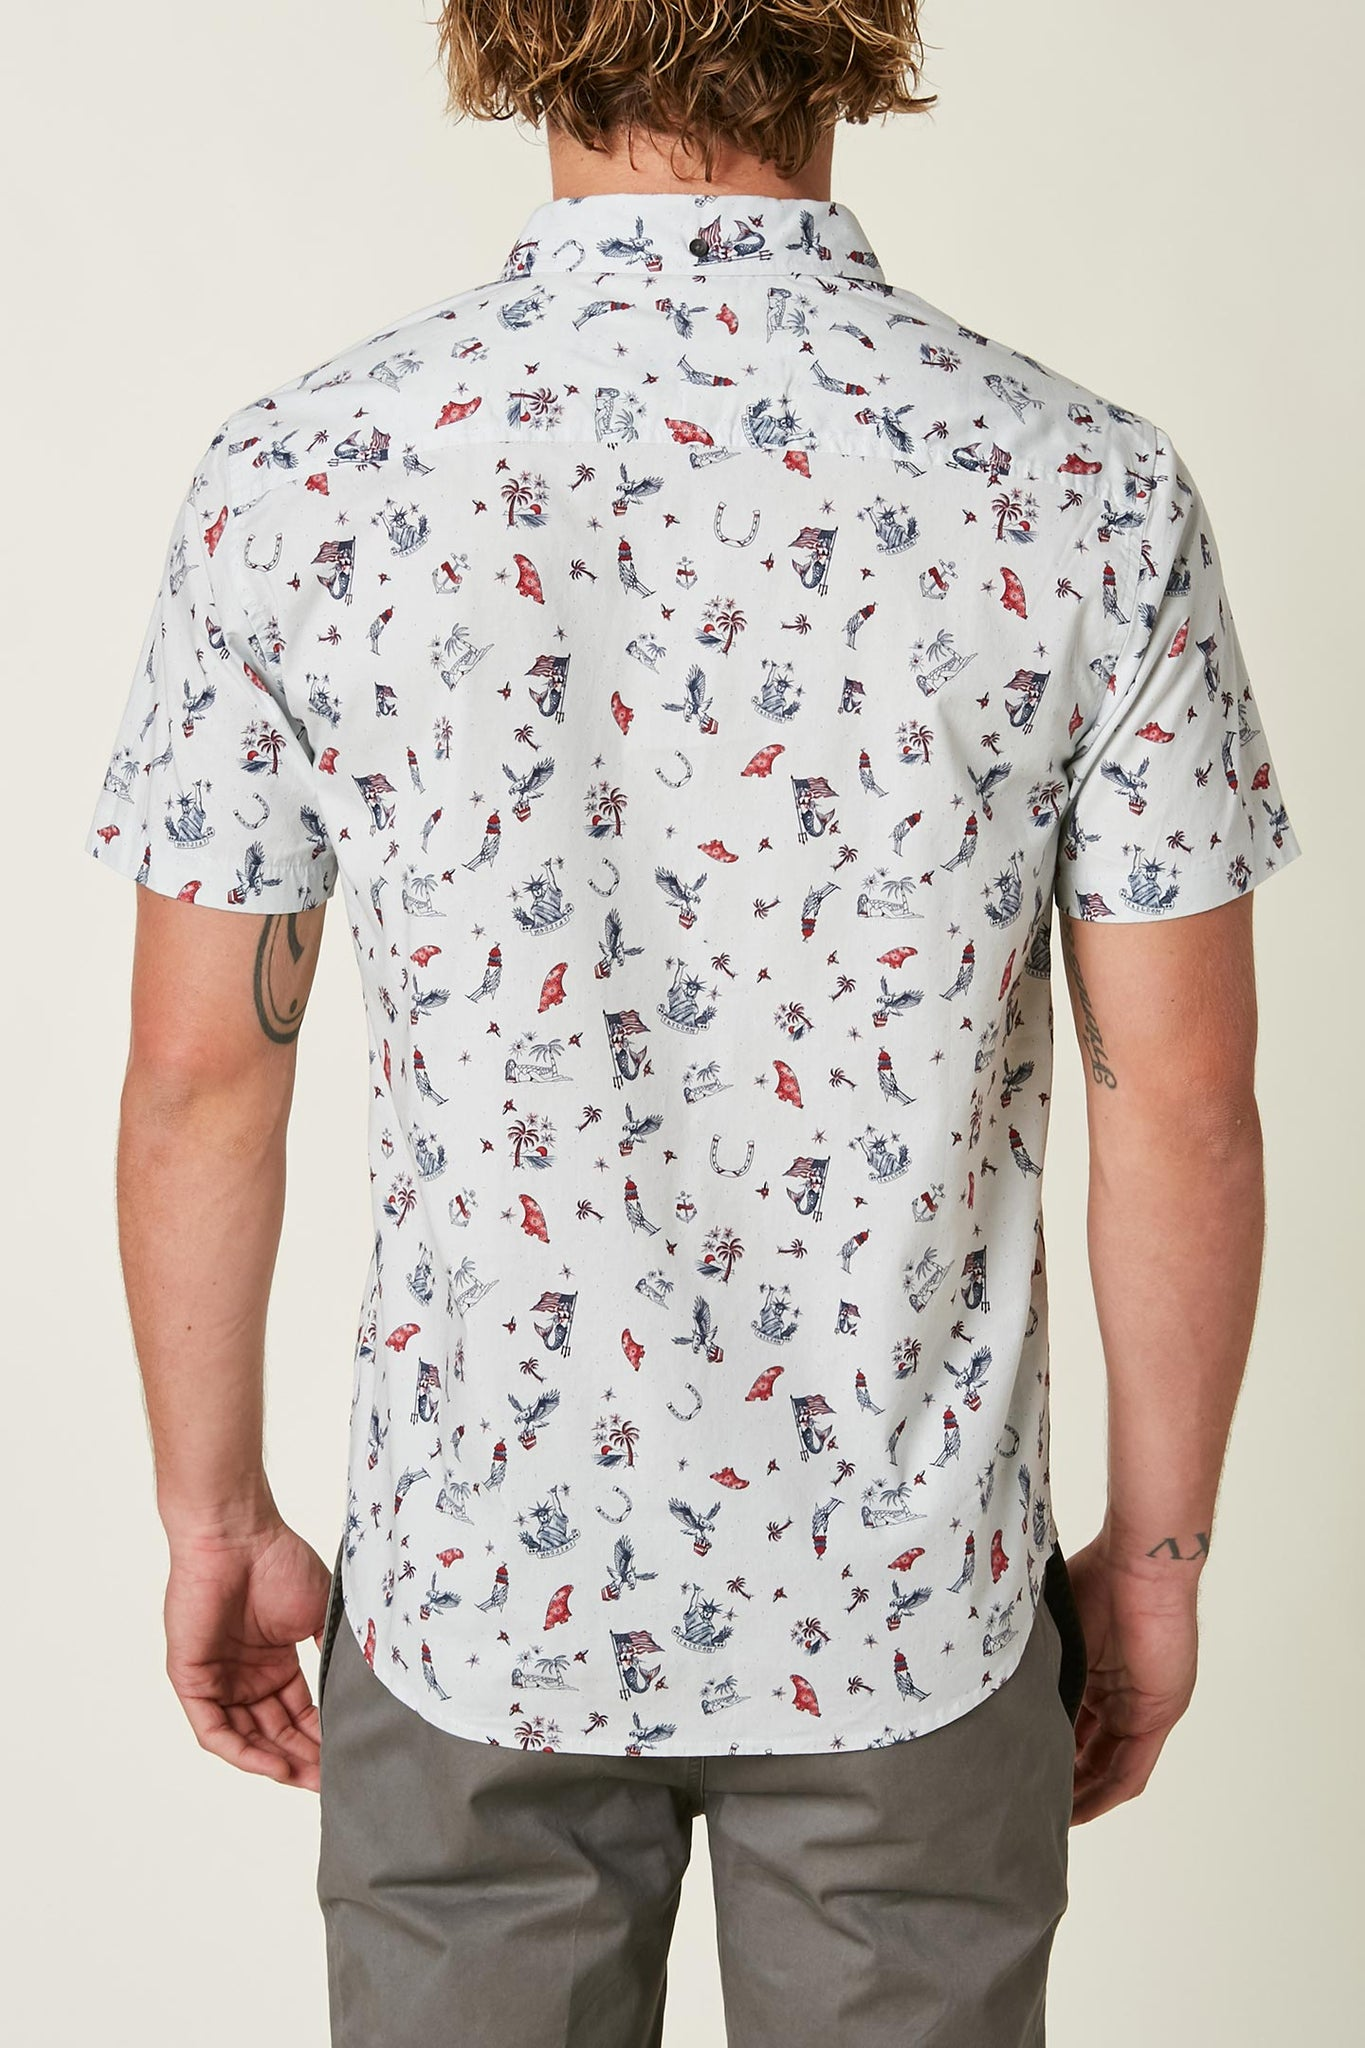 New Merica Shirt | O'Neill Clothing USA